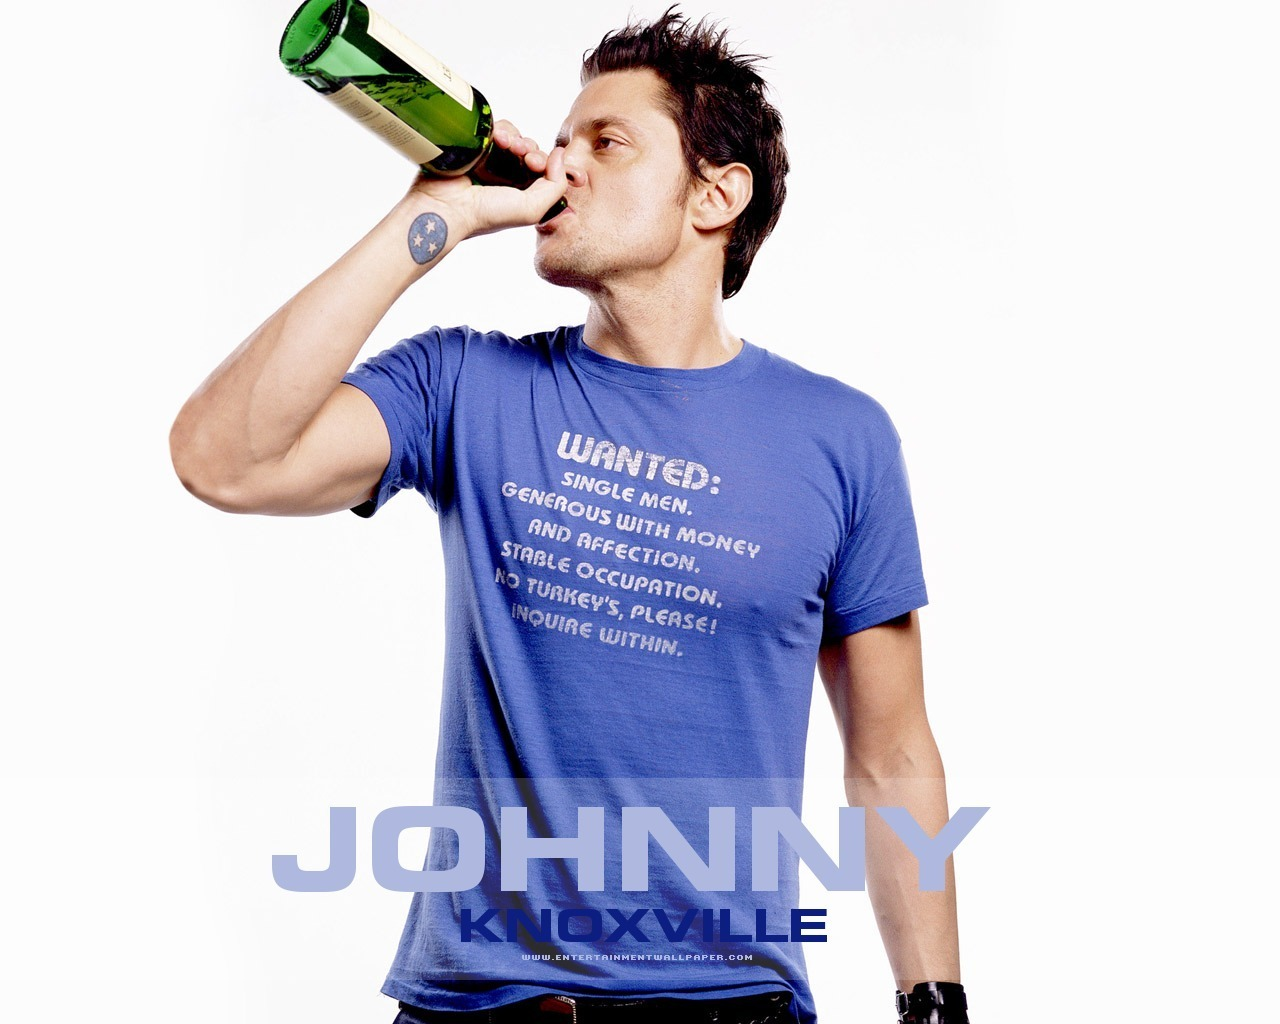 1280x1024 - Johnny Knoxville Wallpapers 5